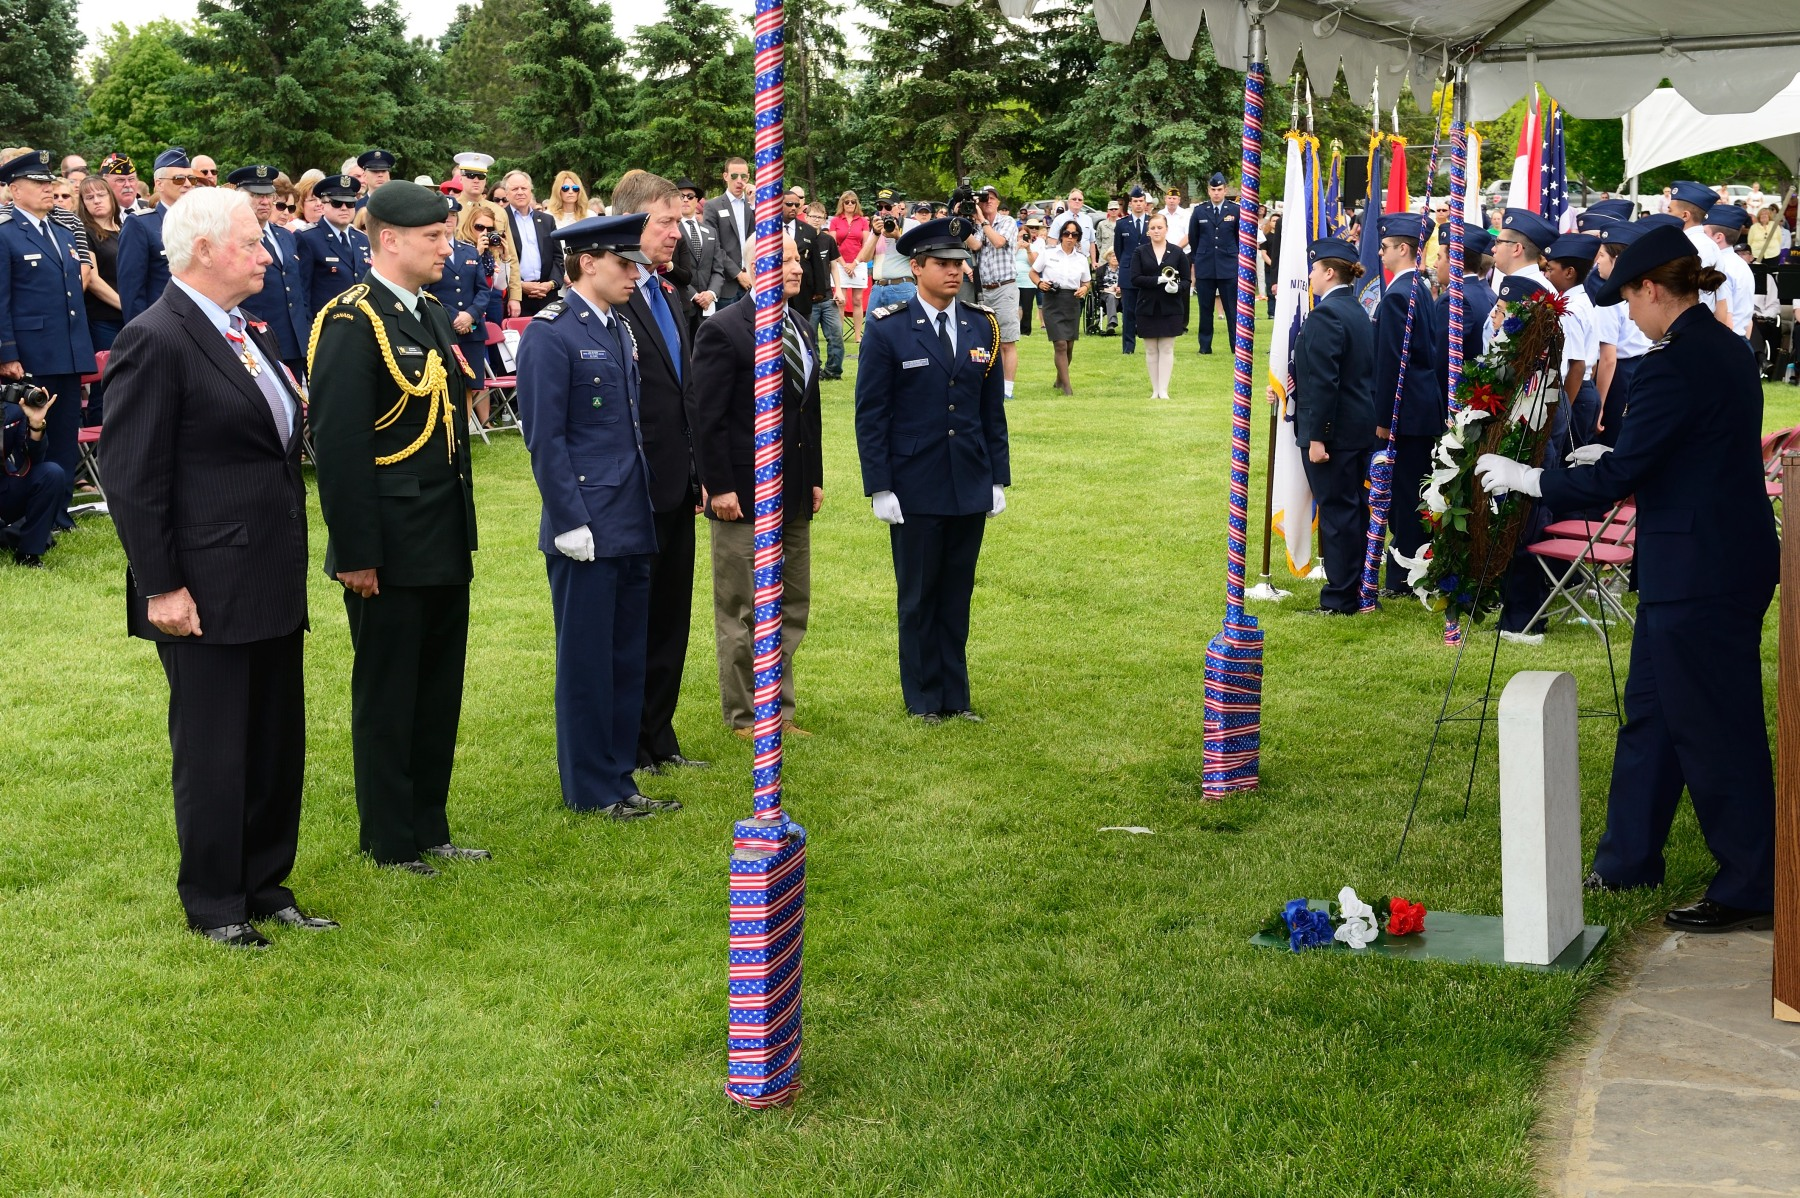 His Excellency laid a wreath alongside the Honourable Mike Coffman, Colorado Congressman, and Colonel John Wagner, Commander of 460th Space Wing, Buckley Air Force Base.